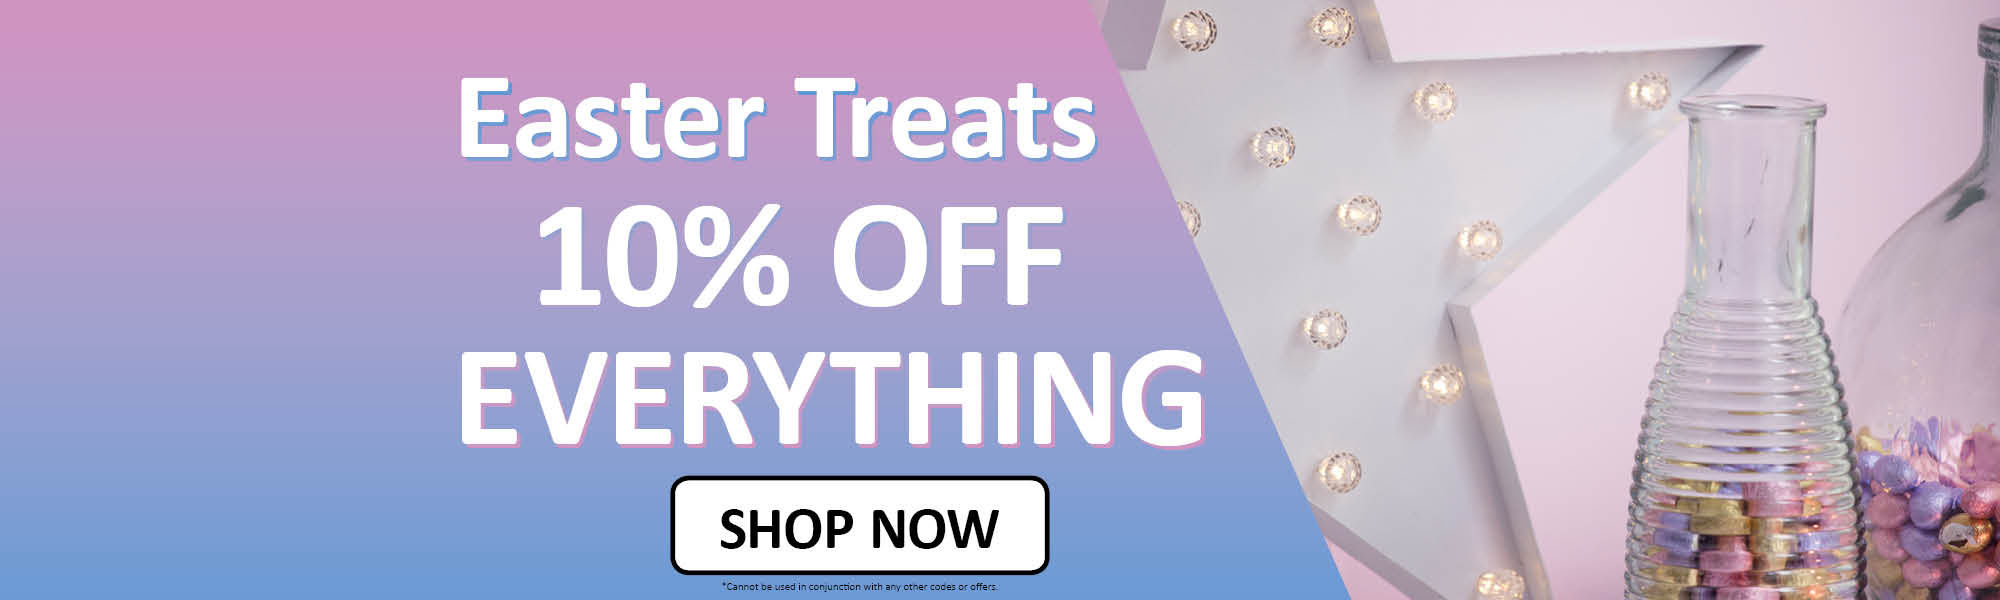 Easter Treats 10% off Everything